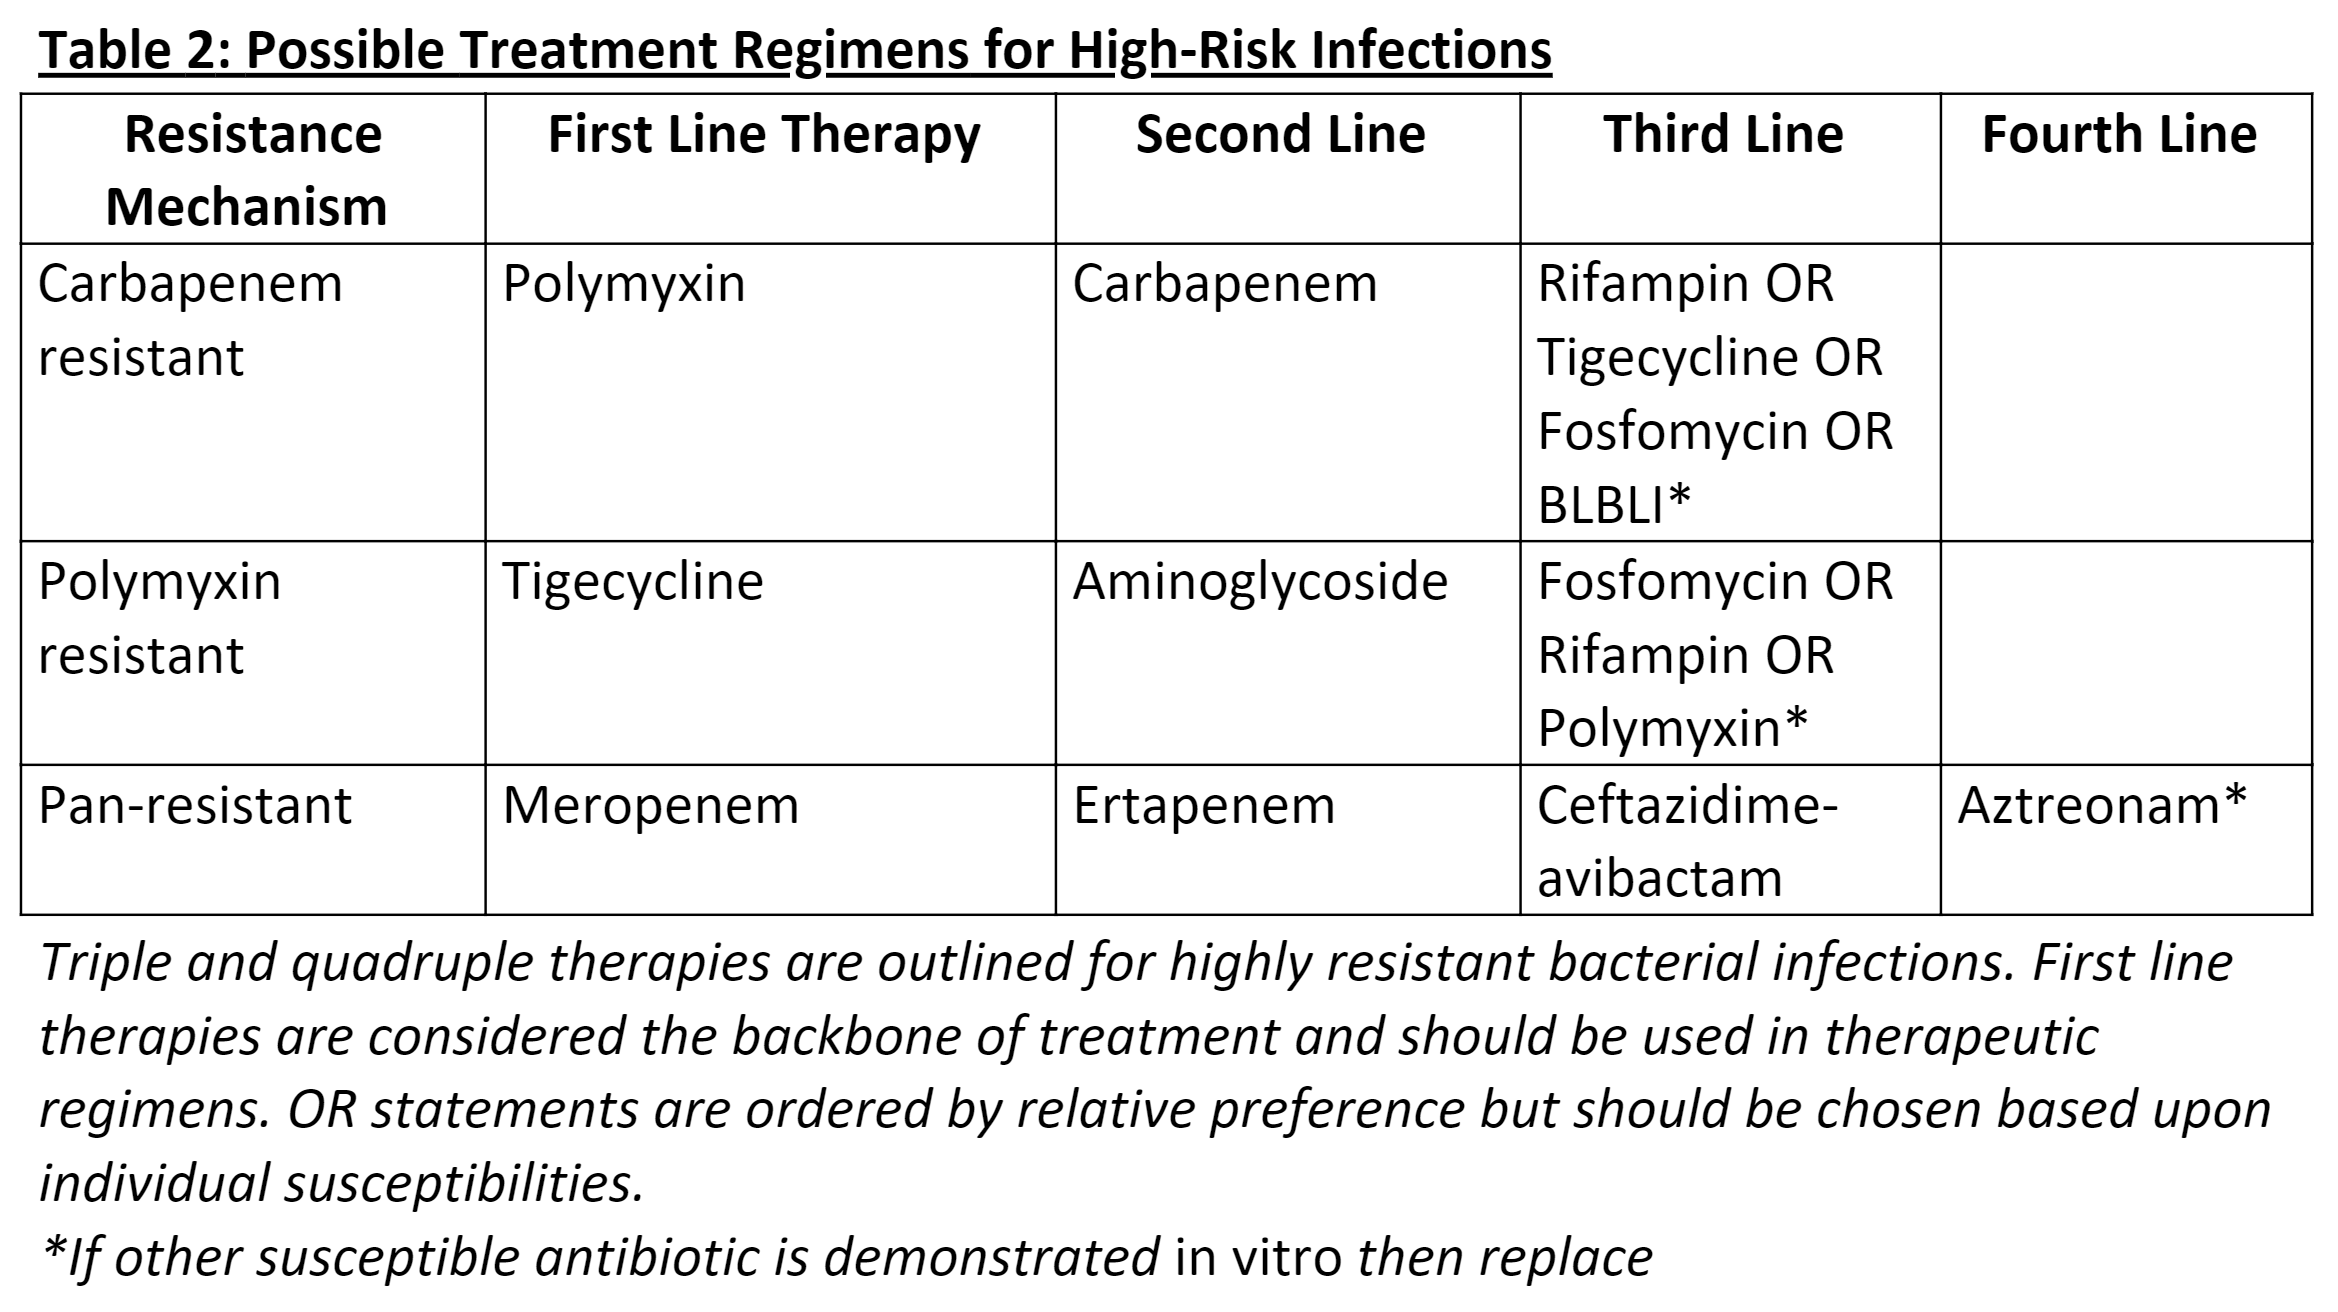 Possible Treatment Regimens for High-Risk Infections